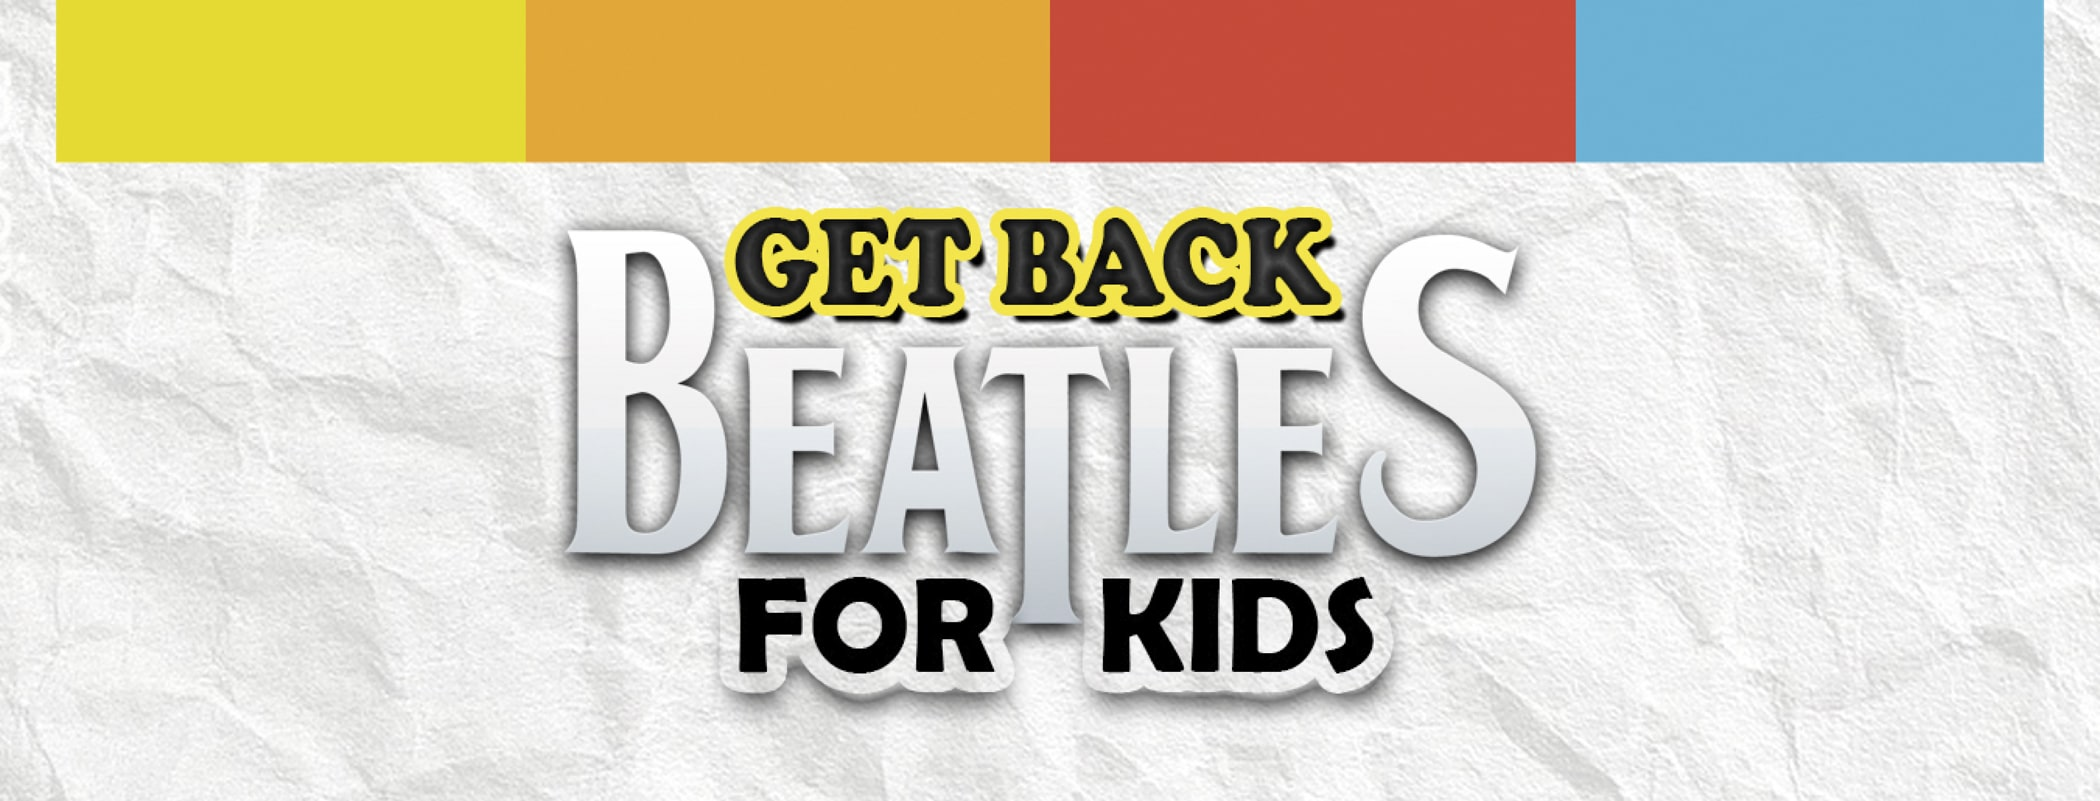 Contratar Tributo Get Back Beatles For Kids